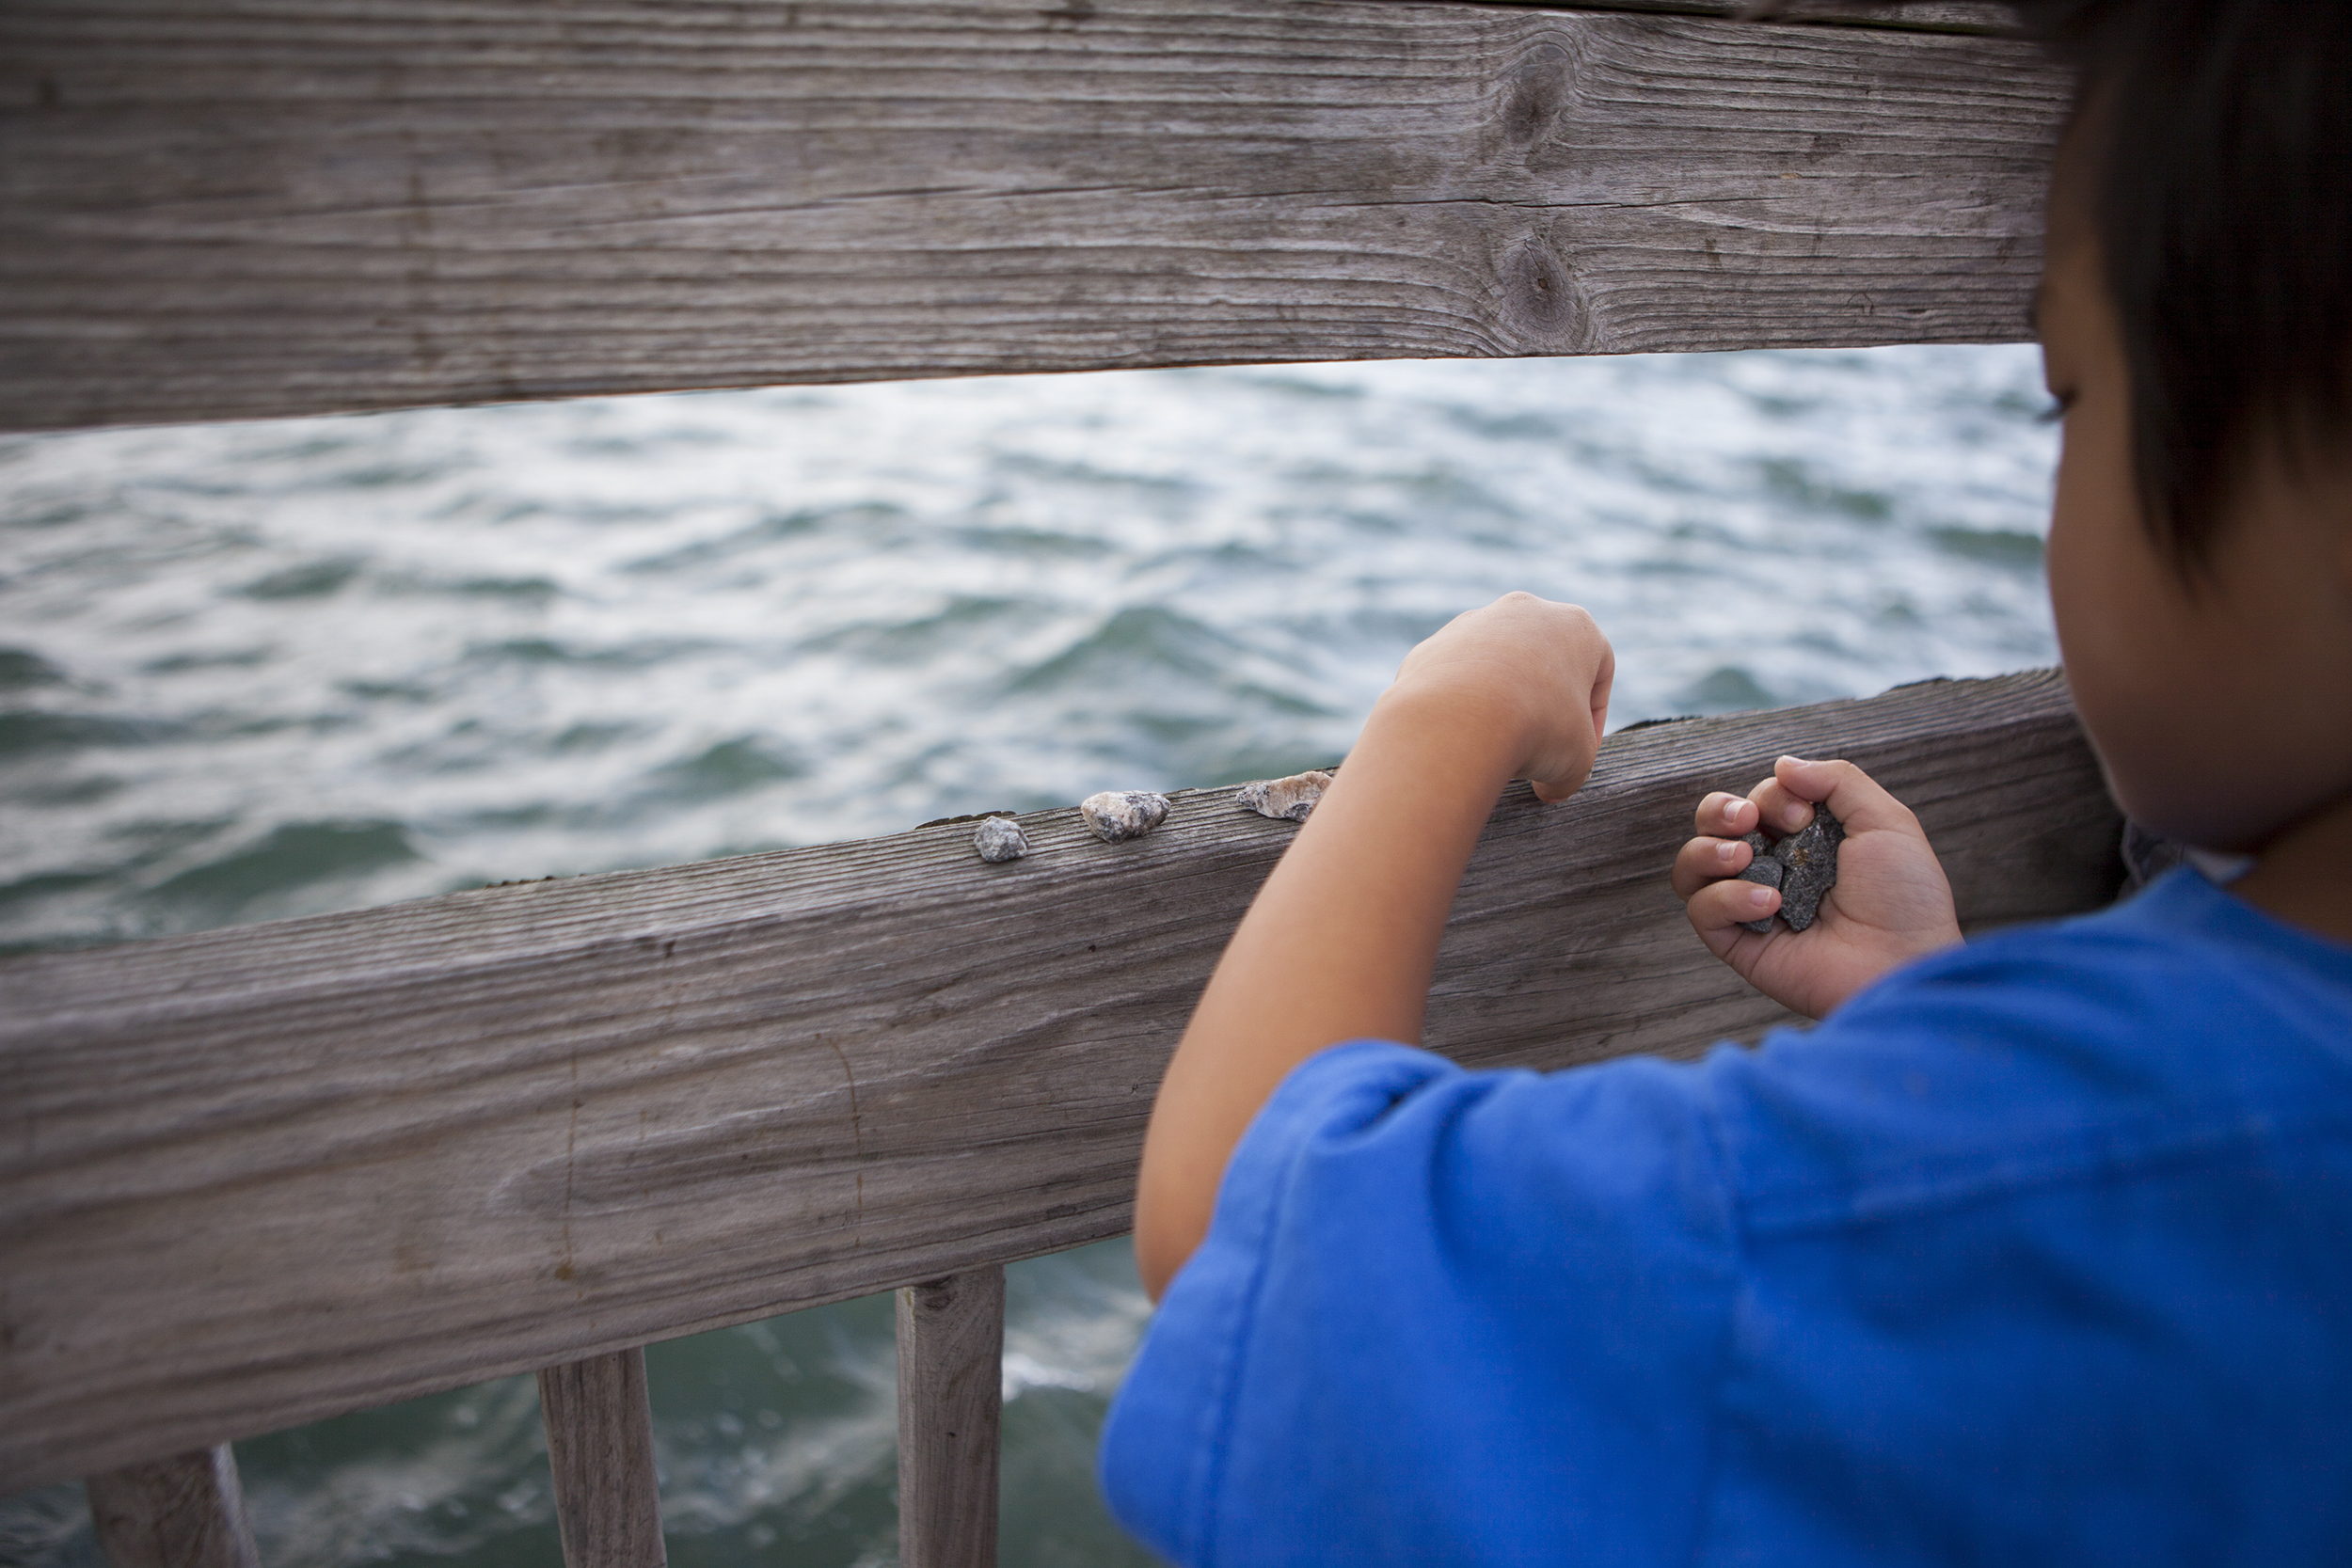 Theodore lines up rocks in a row on the railing of a fishing pier. No fish were caught that day.